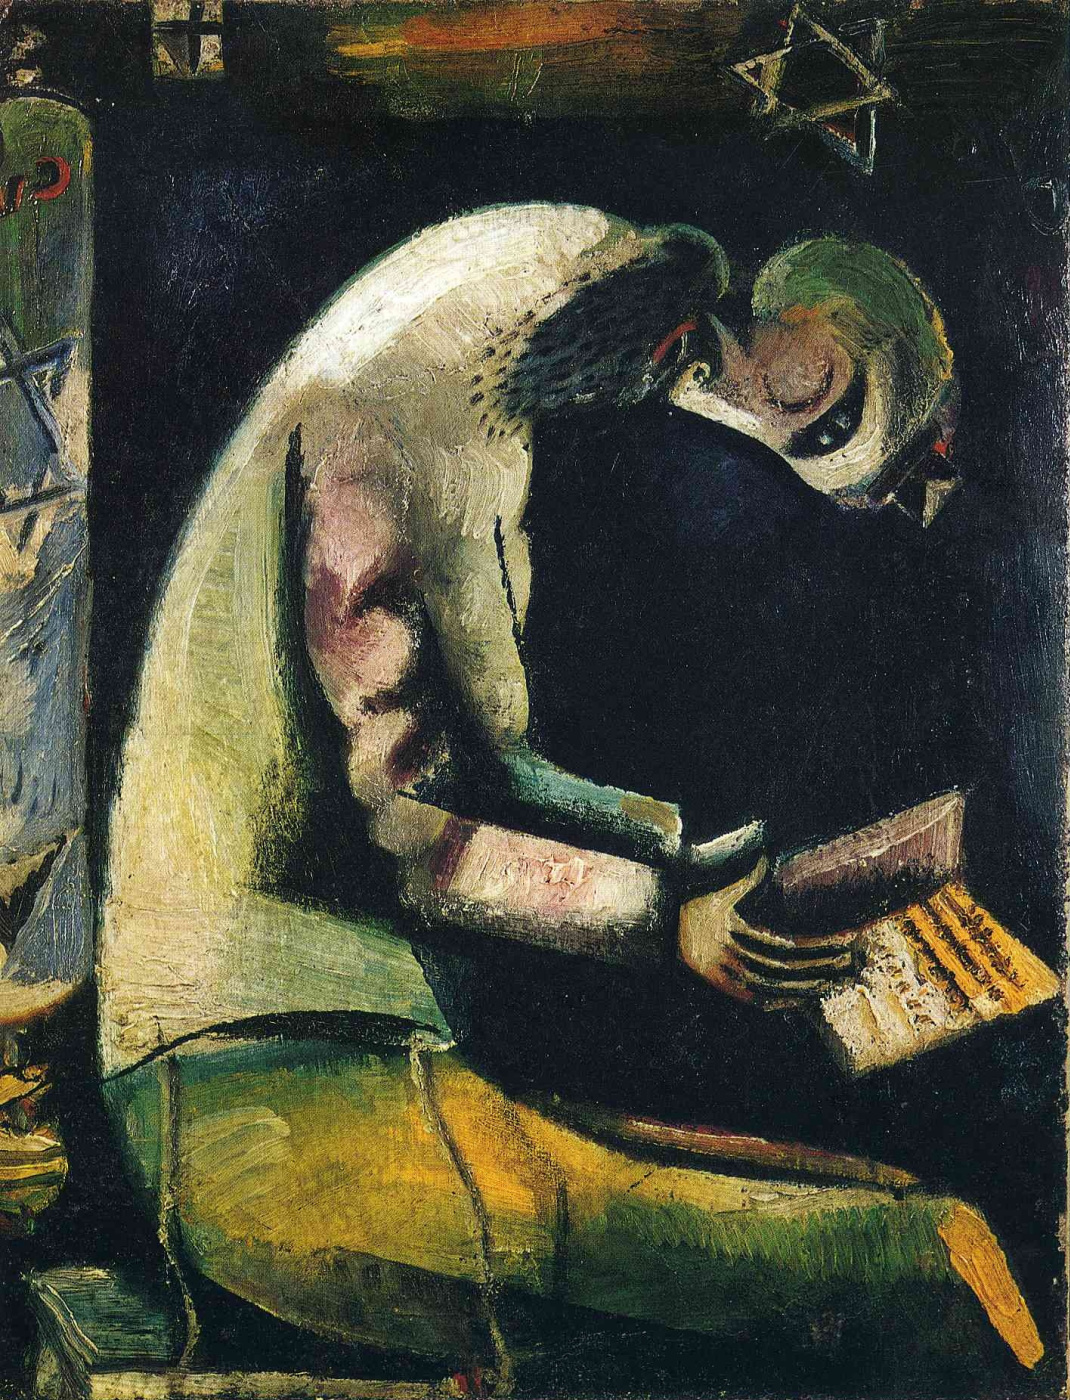 Marc Chagall. A Jew at prayer